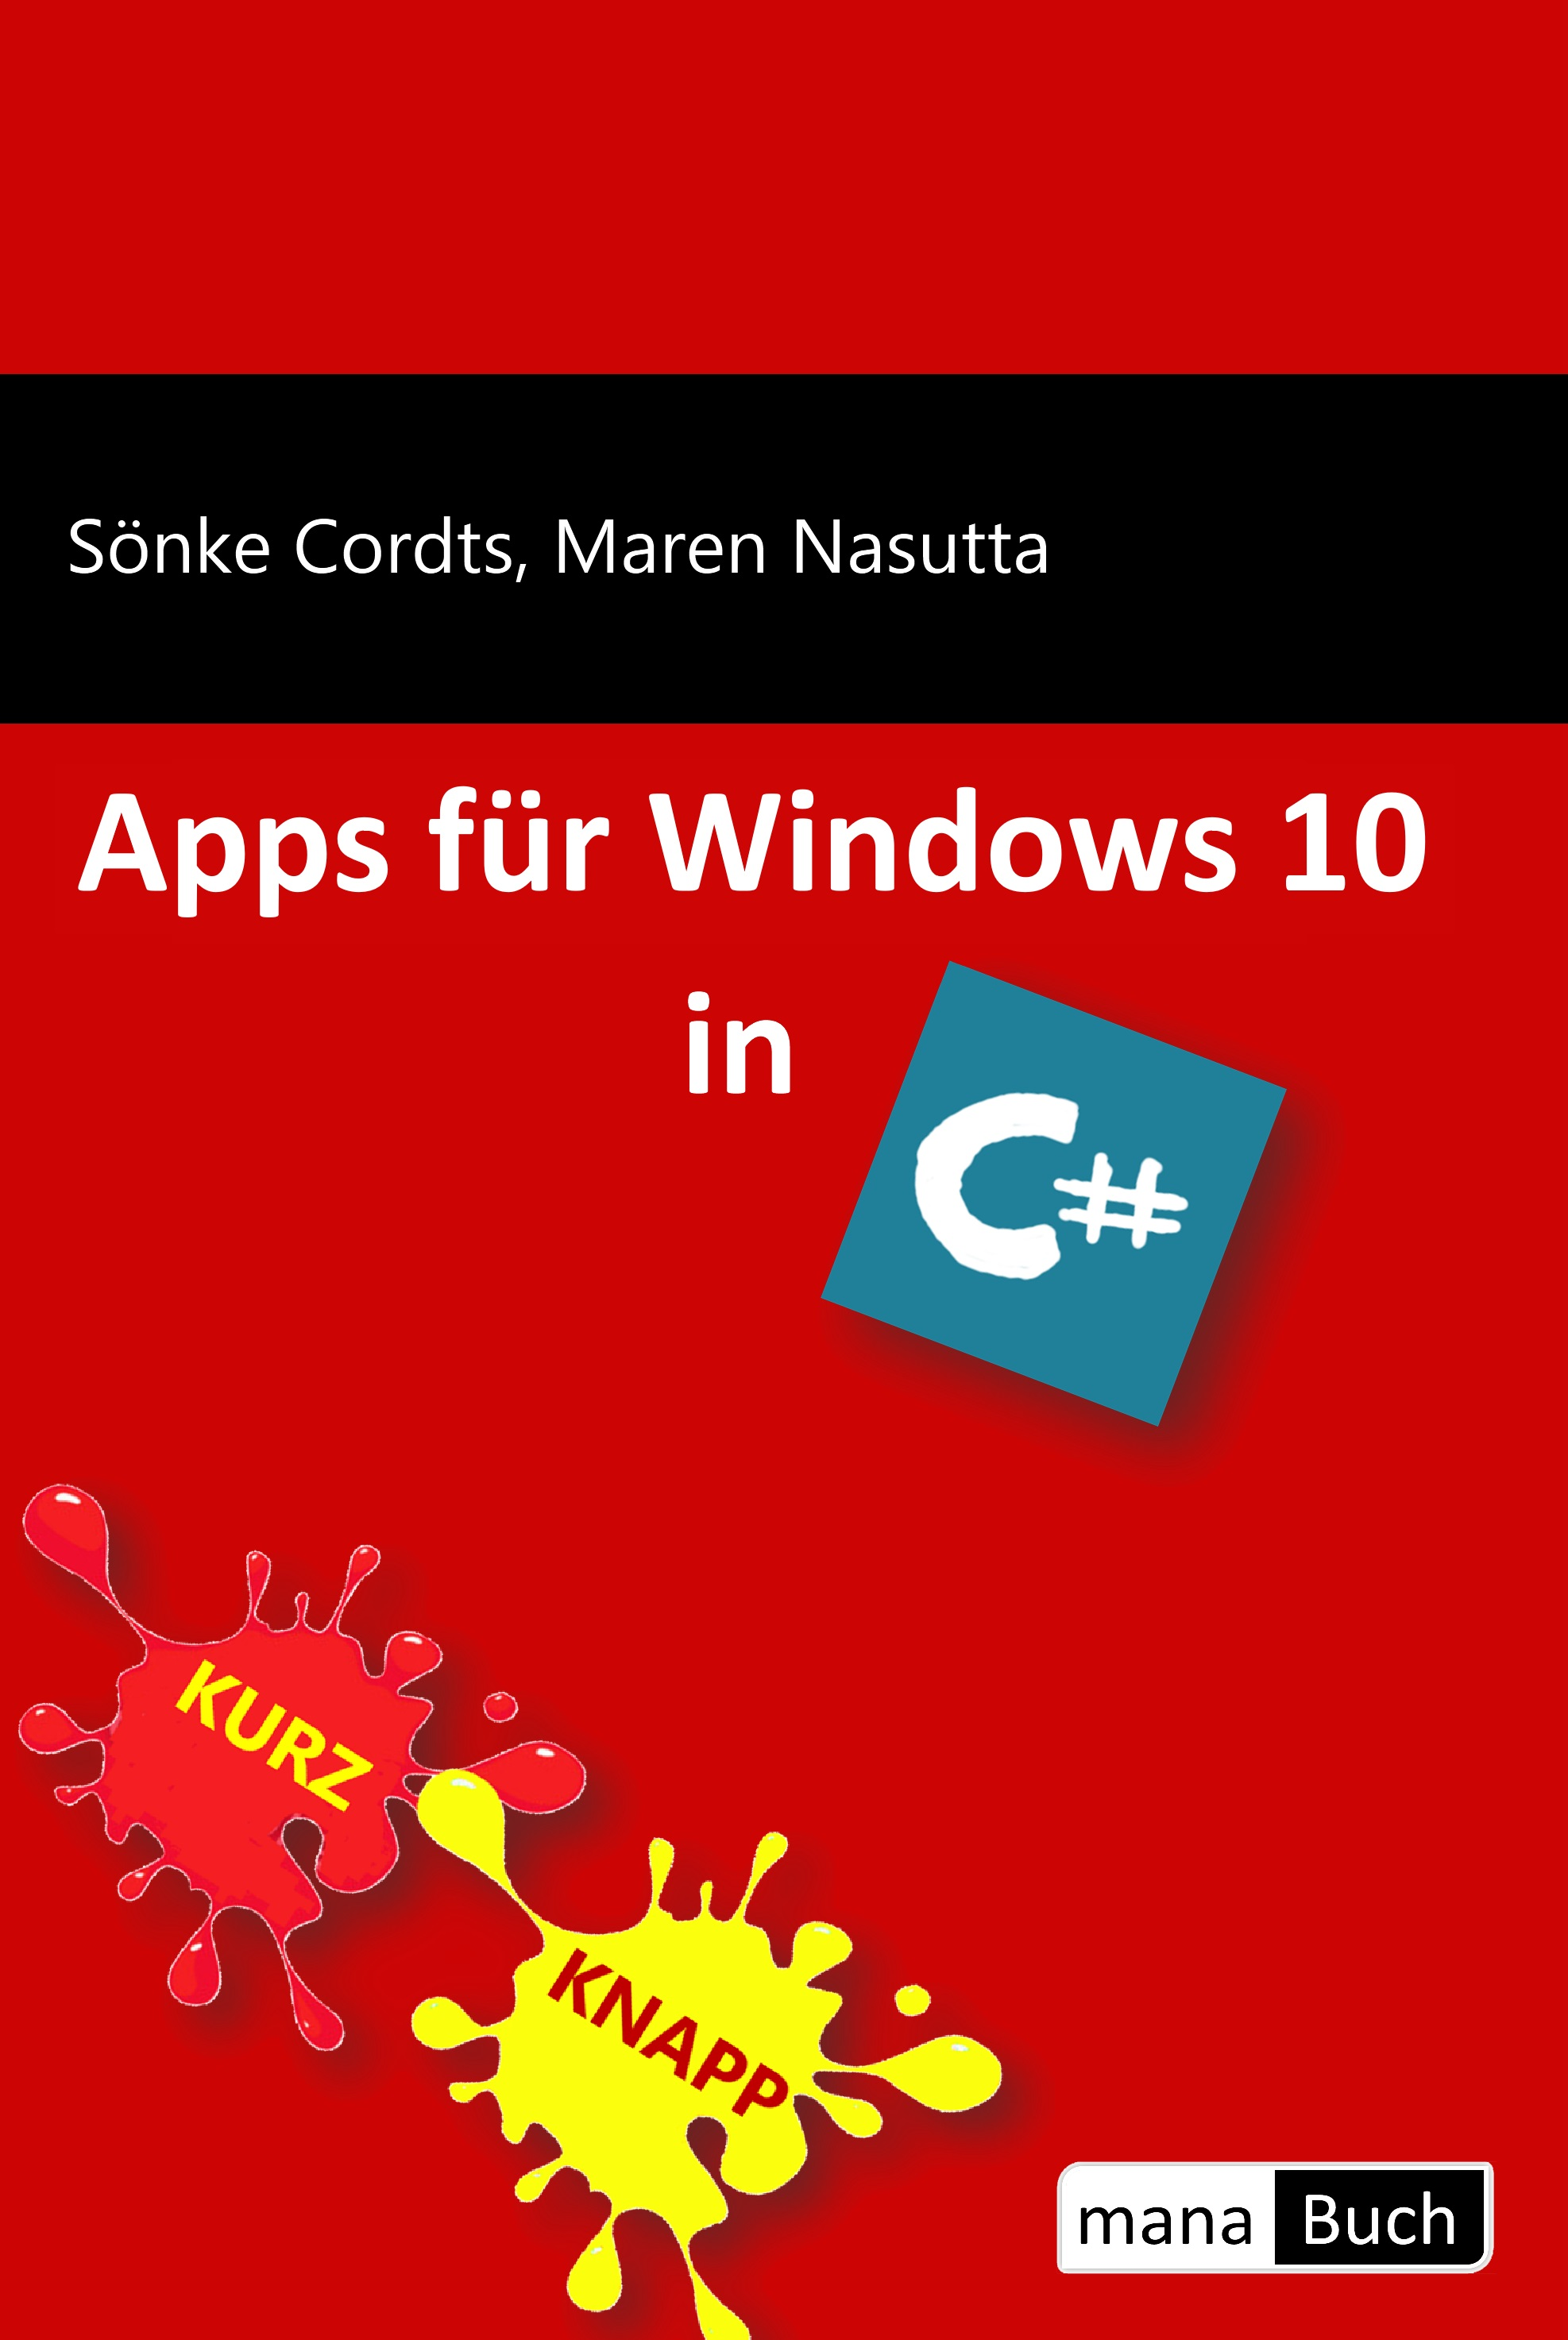 Apps für Windows 10 in C#